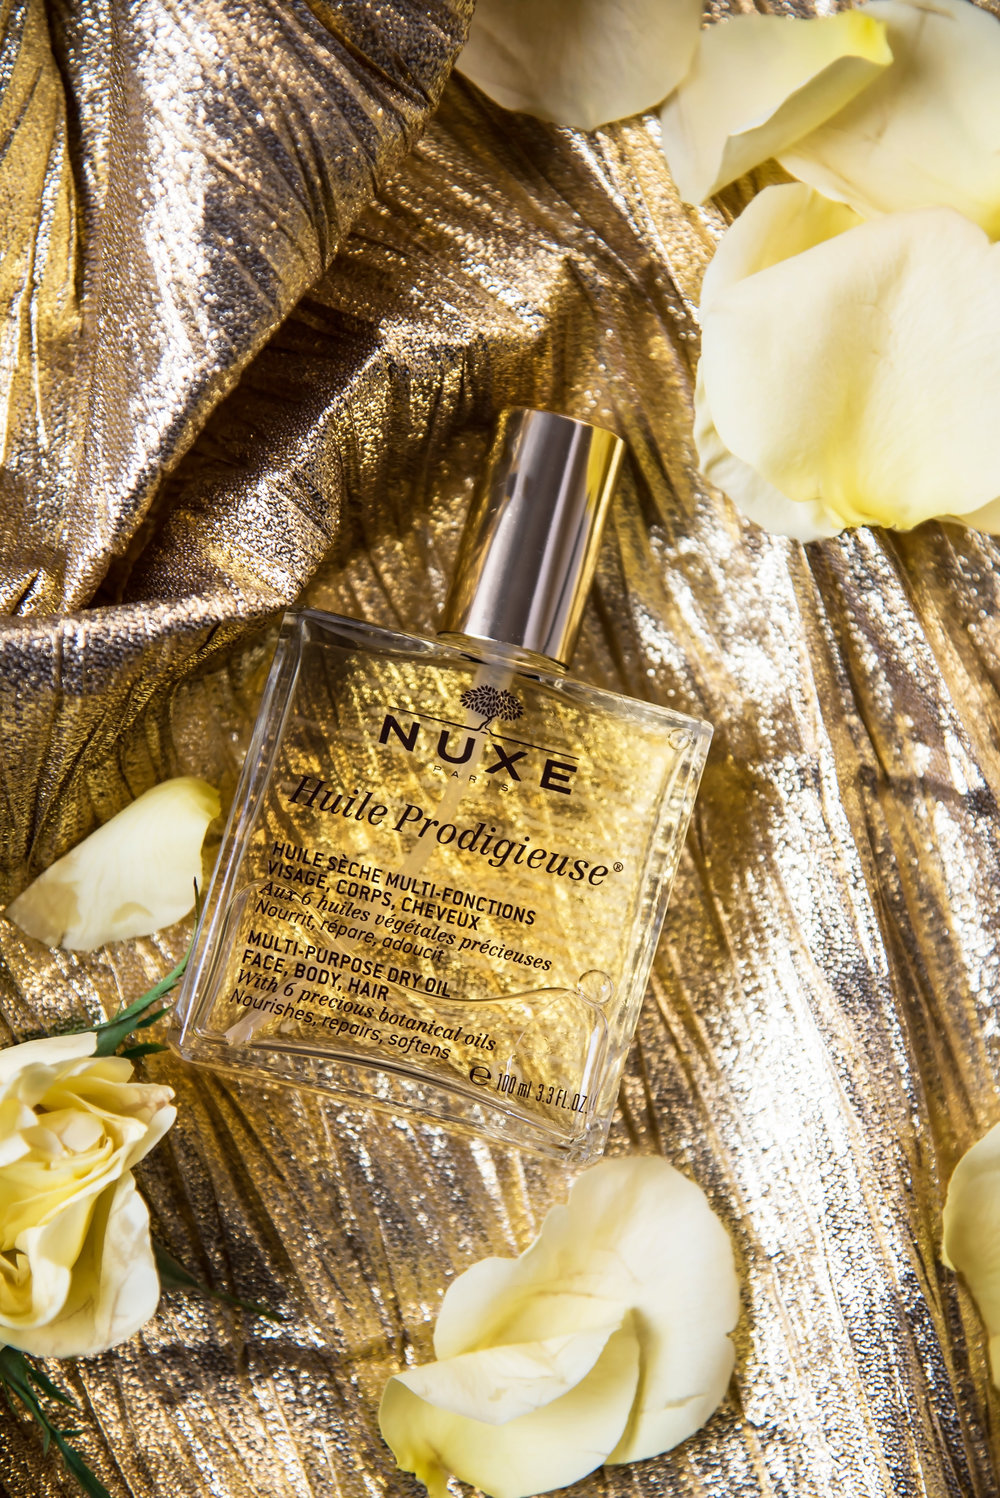 ROSE & IVY Journal Gift Guide The Mood Gold & White UXE Huile Prodigieuse Multi-Purpose Dry Oil